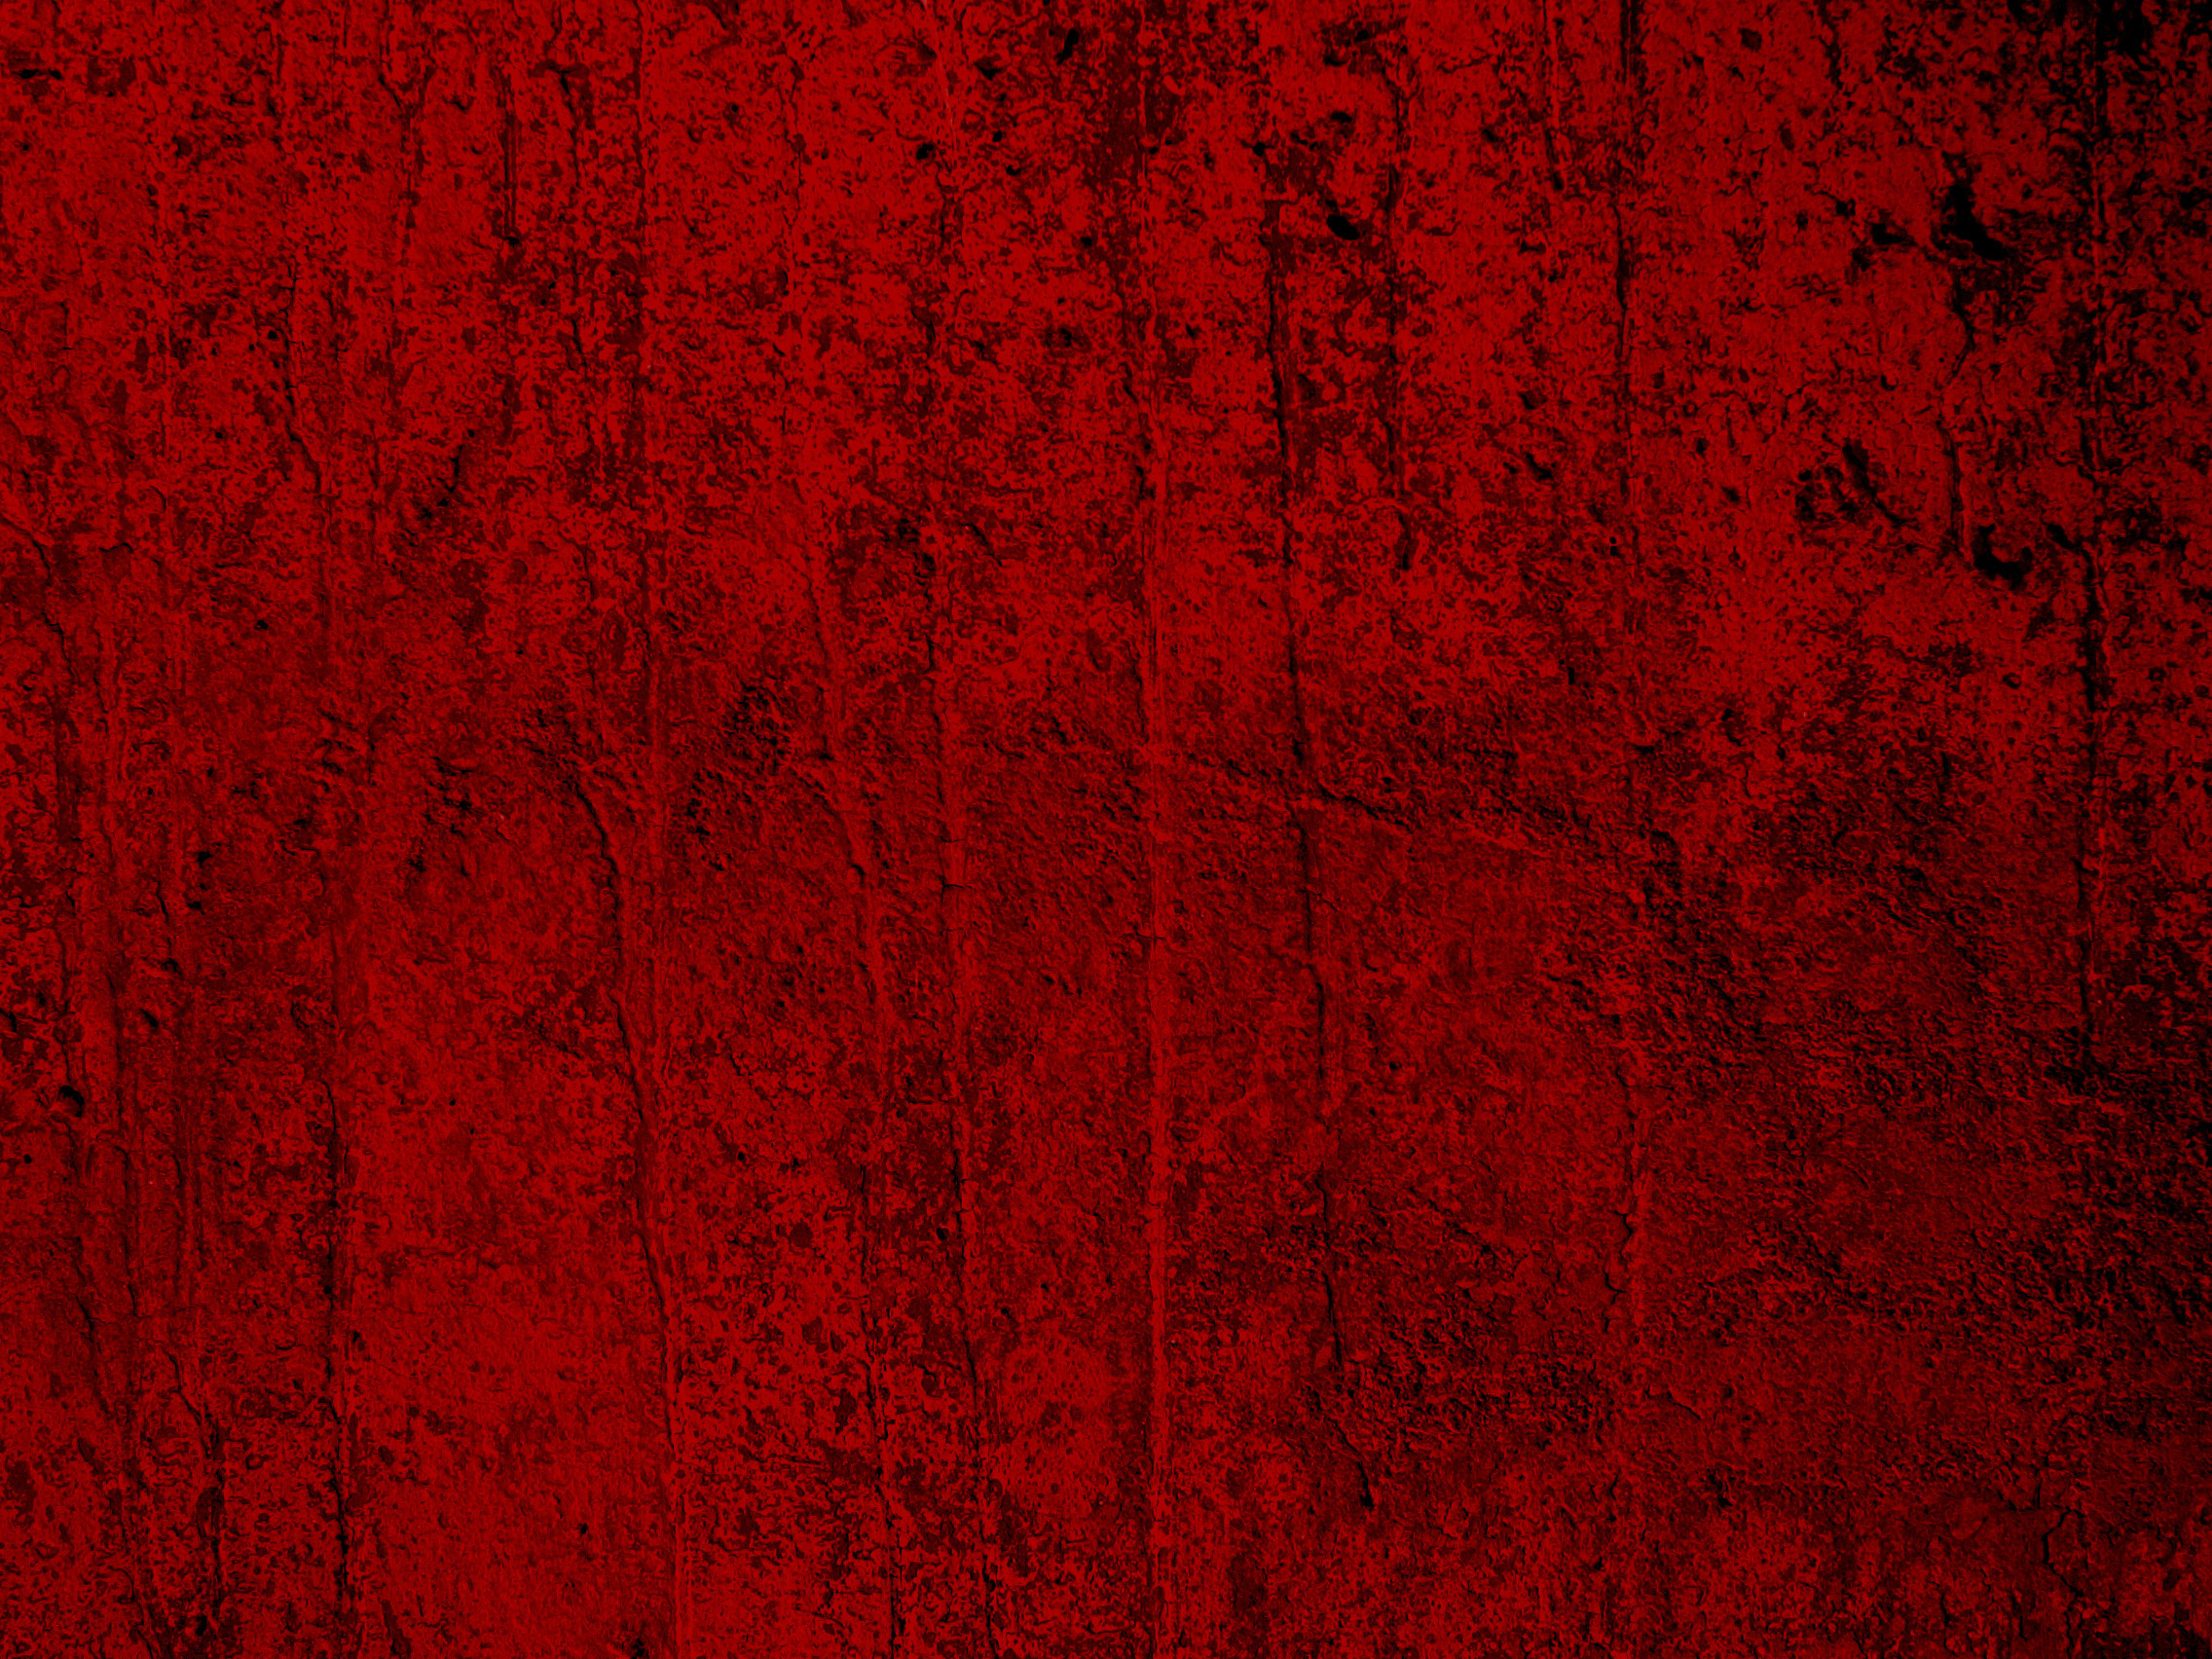 2272x1704 Red Background with Scratches